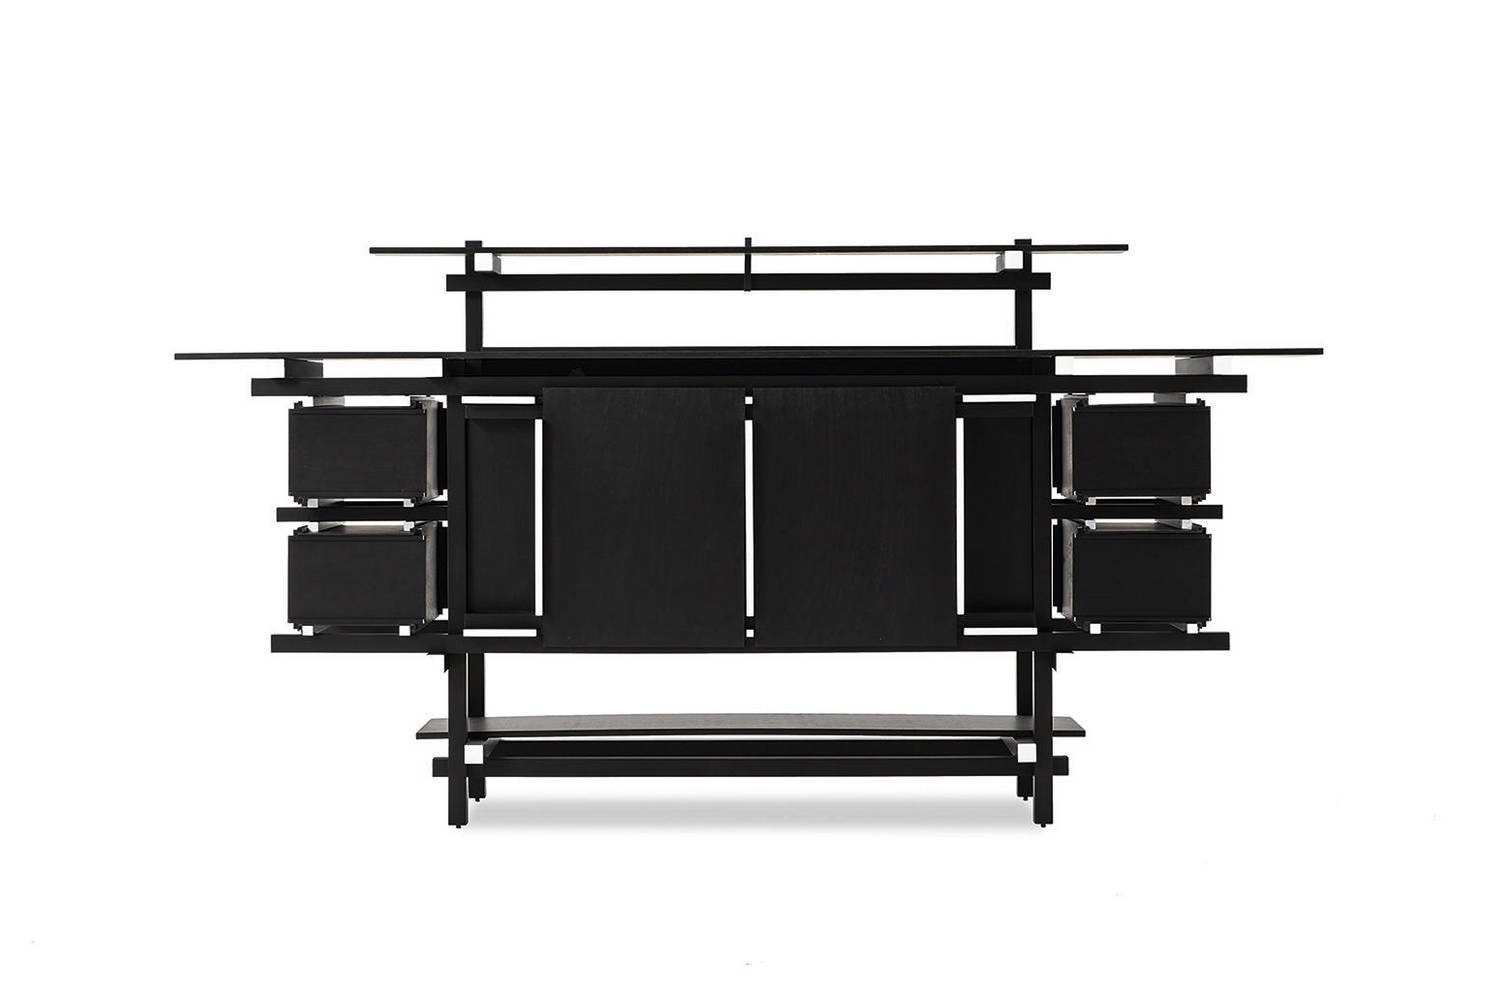 636 Elling Buffet by Gerrit Thomas Rietveld for Cassina